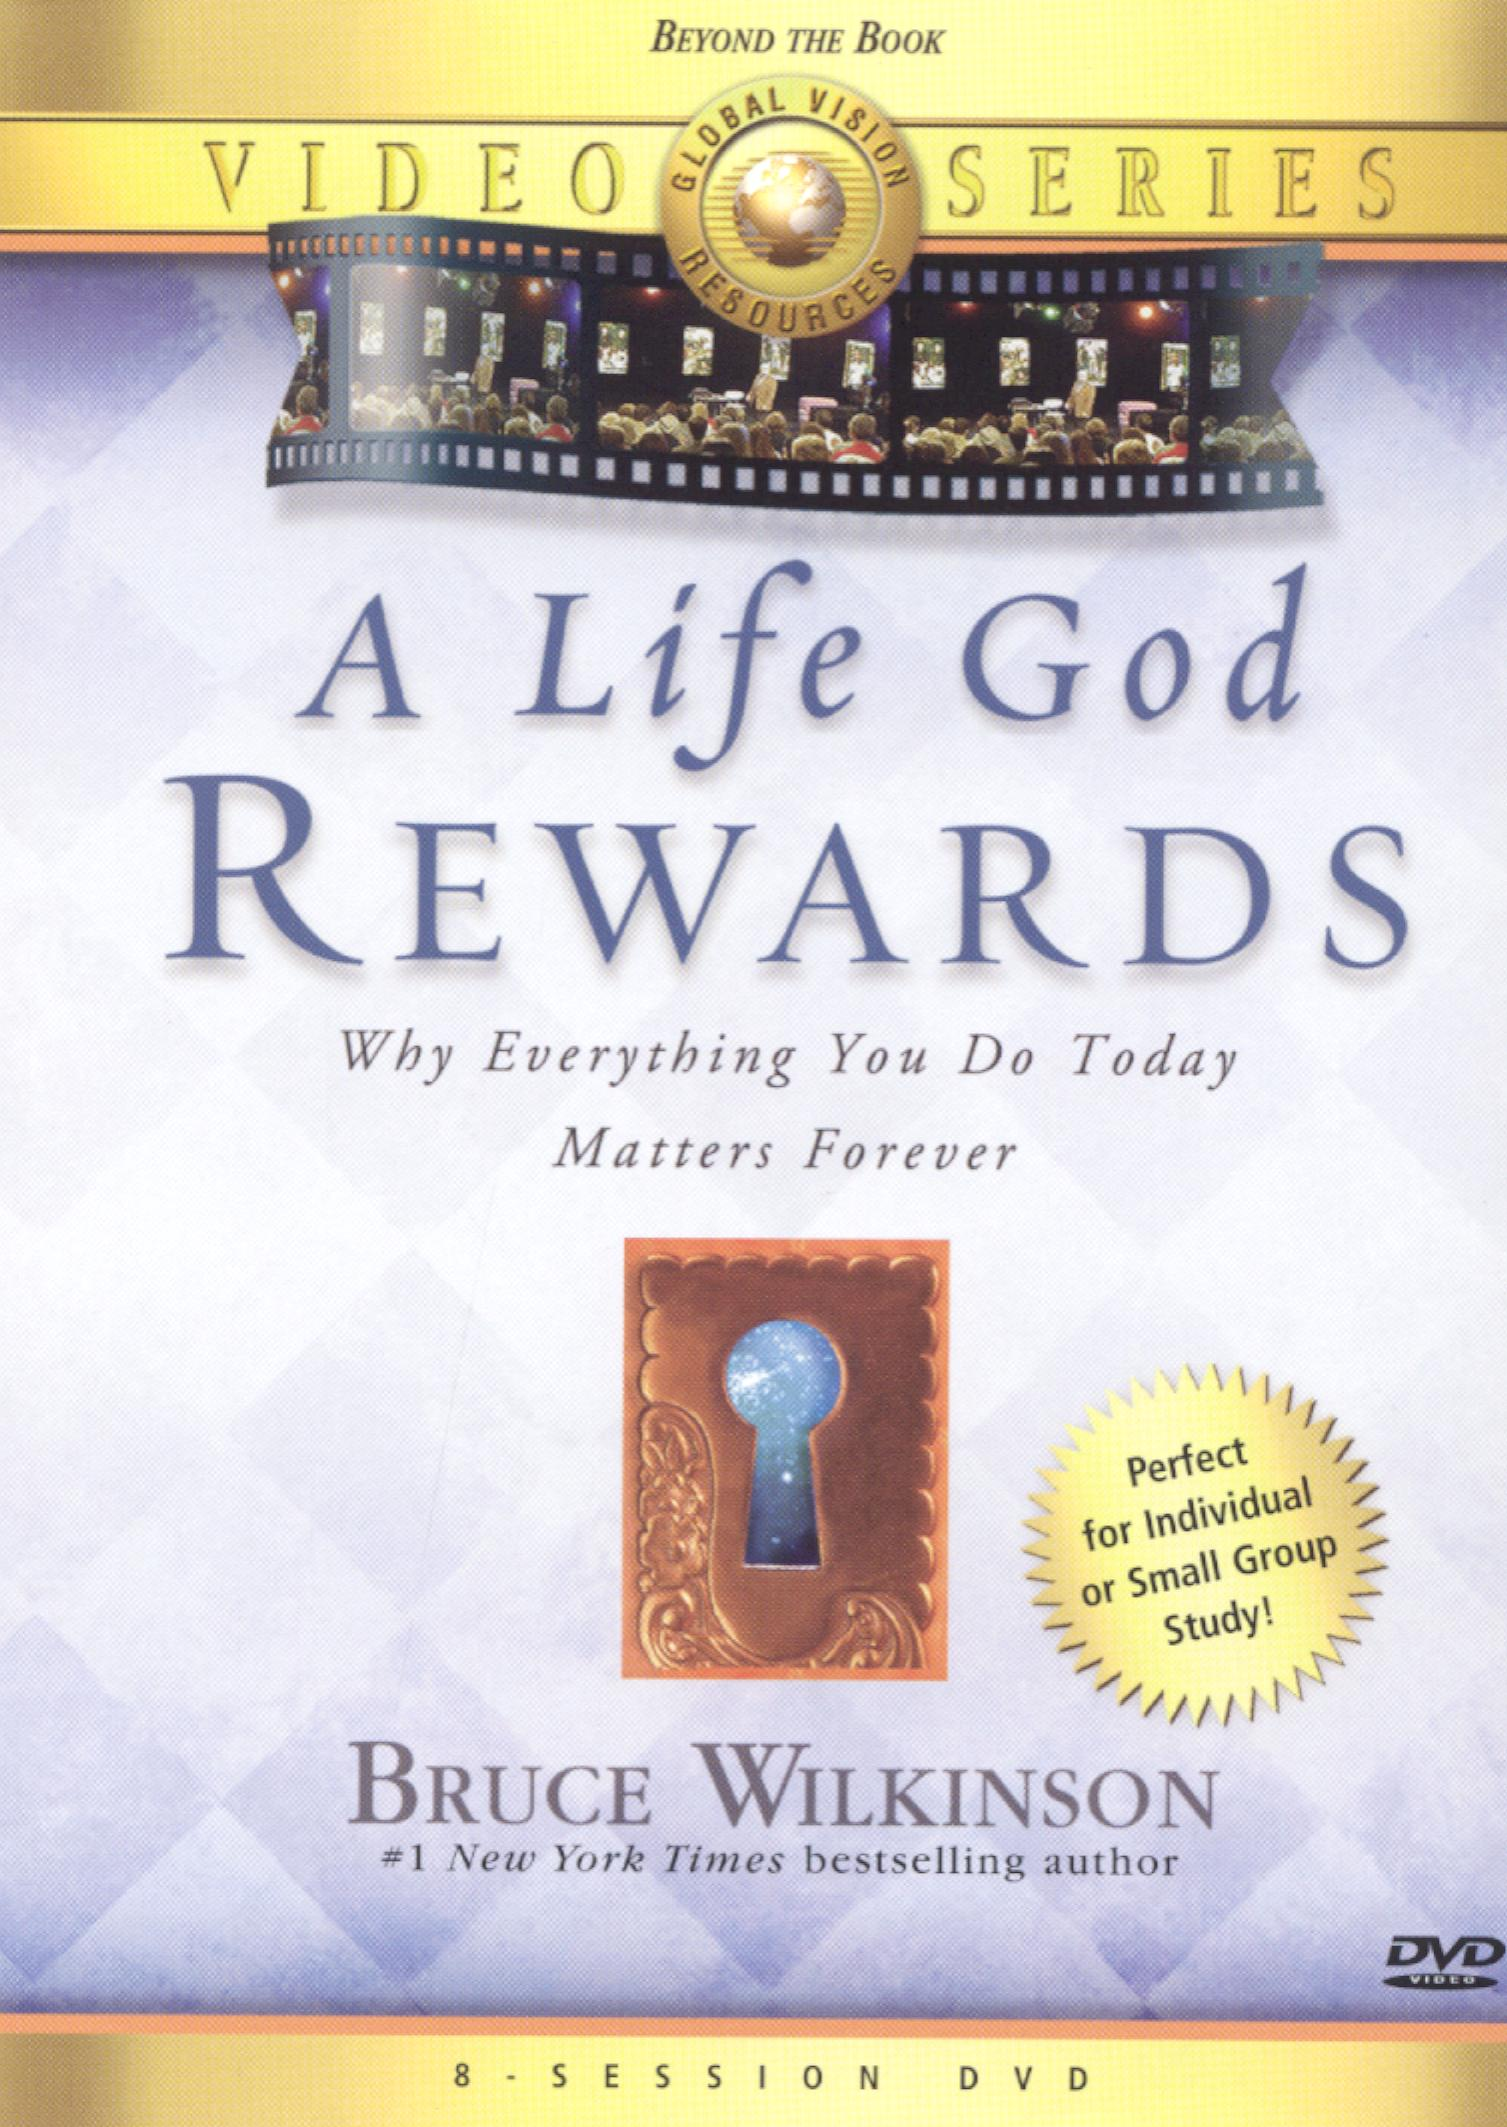 Bruce Wilkinson: A Life God Rewards